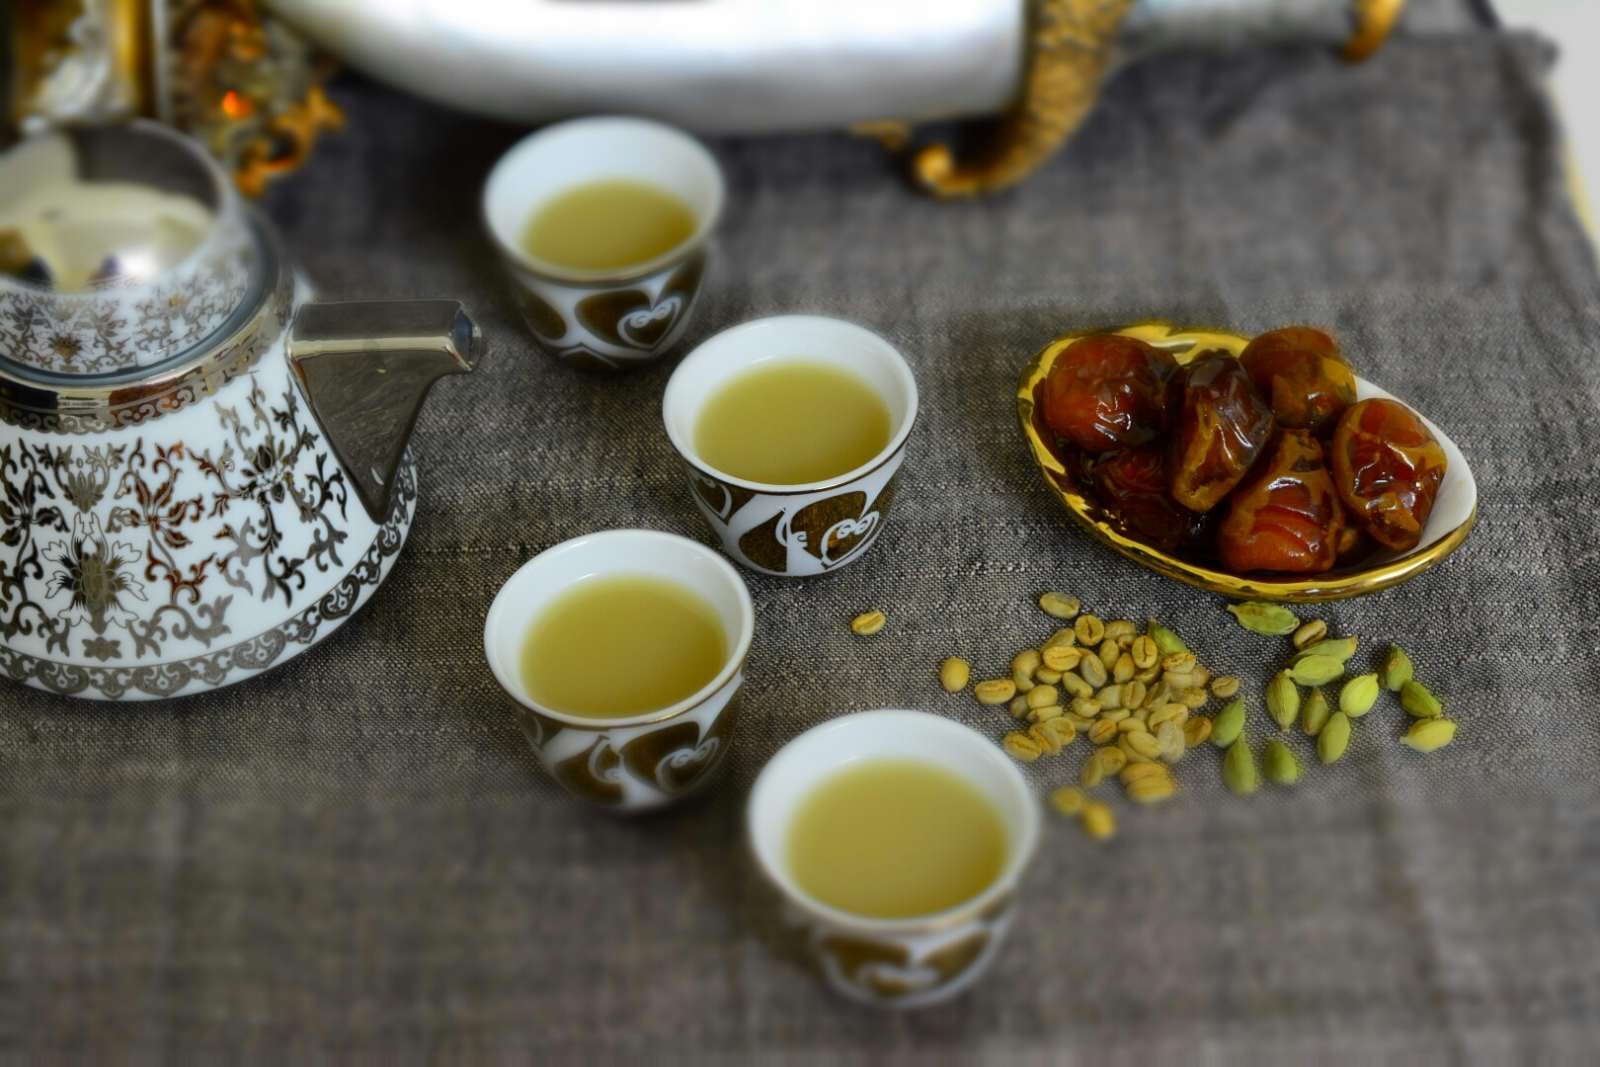 Arabica Tea Coffee Zeist Qahwa Arabic Coffee Recipe By Archana 39s Kitchen